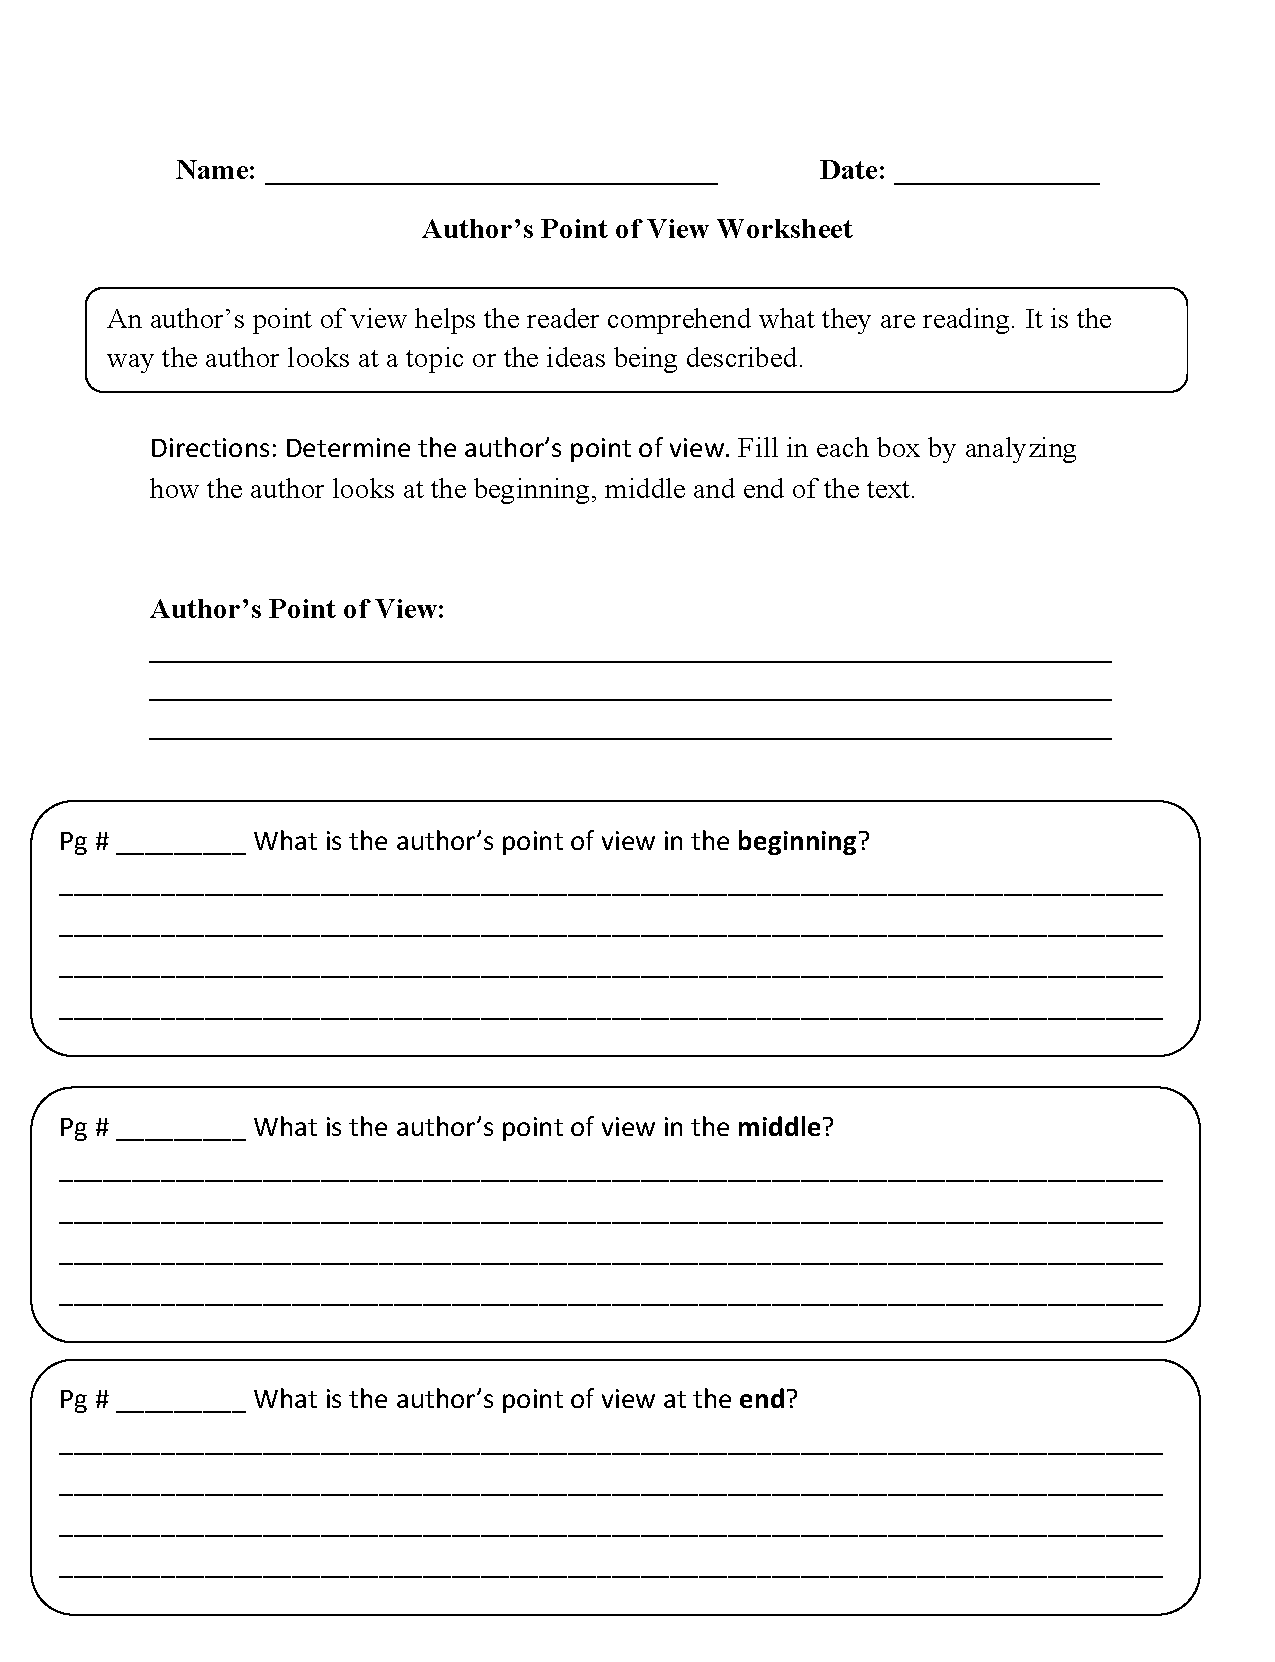 Weirdmailus  Pleasant Englishlinxcom  Point Of View Worksheets With Interesting Point Of View Worksheets With Breathtaking Free Learning Worksheets Also My Culture Worksheet In Addition Free Printable Letter C Worksheets And Parallel Structure Practice Worksheet As Well As Spiritual Gifts Worksheet Additionally First Grade Homework Worksheets From Englishlinxcom With Weirdmailus  Interesting Englishlinxcom  Point Of View Worksheets With Breathtaking Point Of View Worksheets And Pleasant Free Learning Worksheets Also My Culture Worksheet In Addition Free Printable Letter C Worksheets From Englishlinxcom